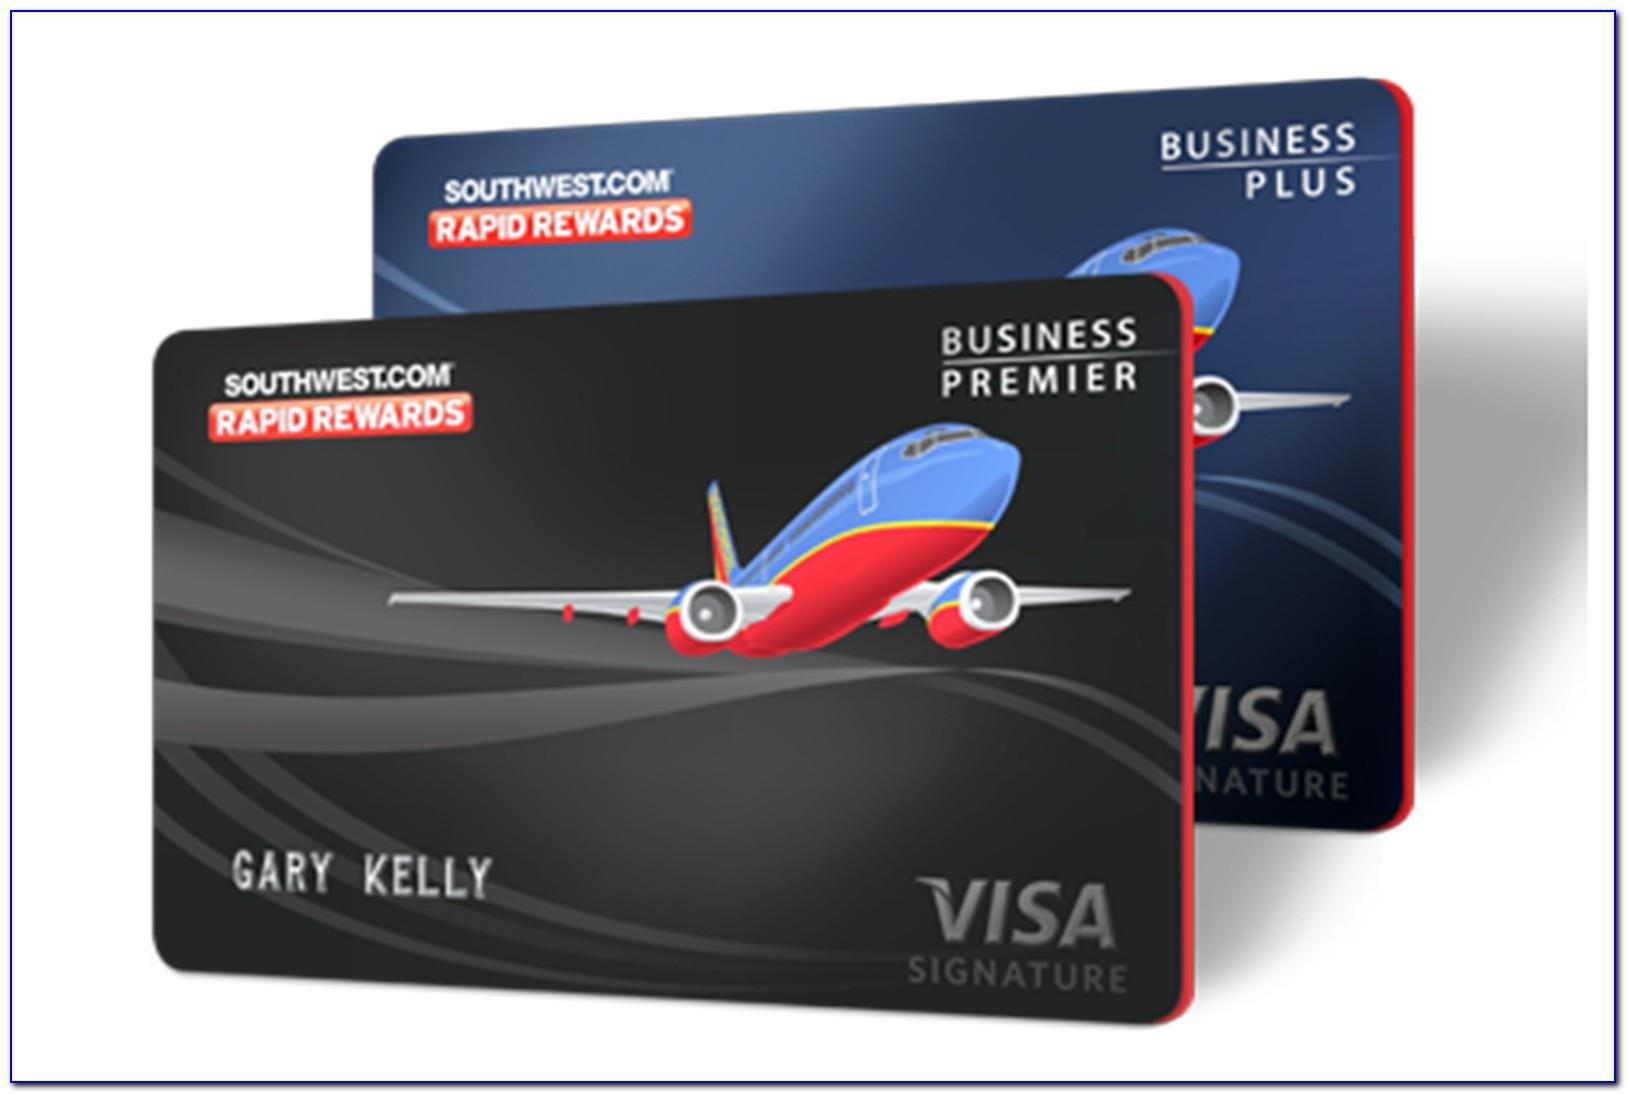 Income Tax Preparer Business Cards Sample